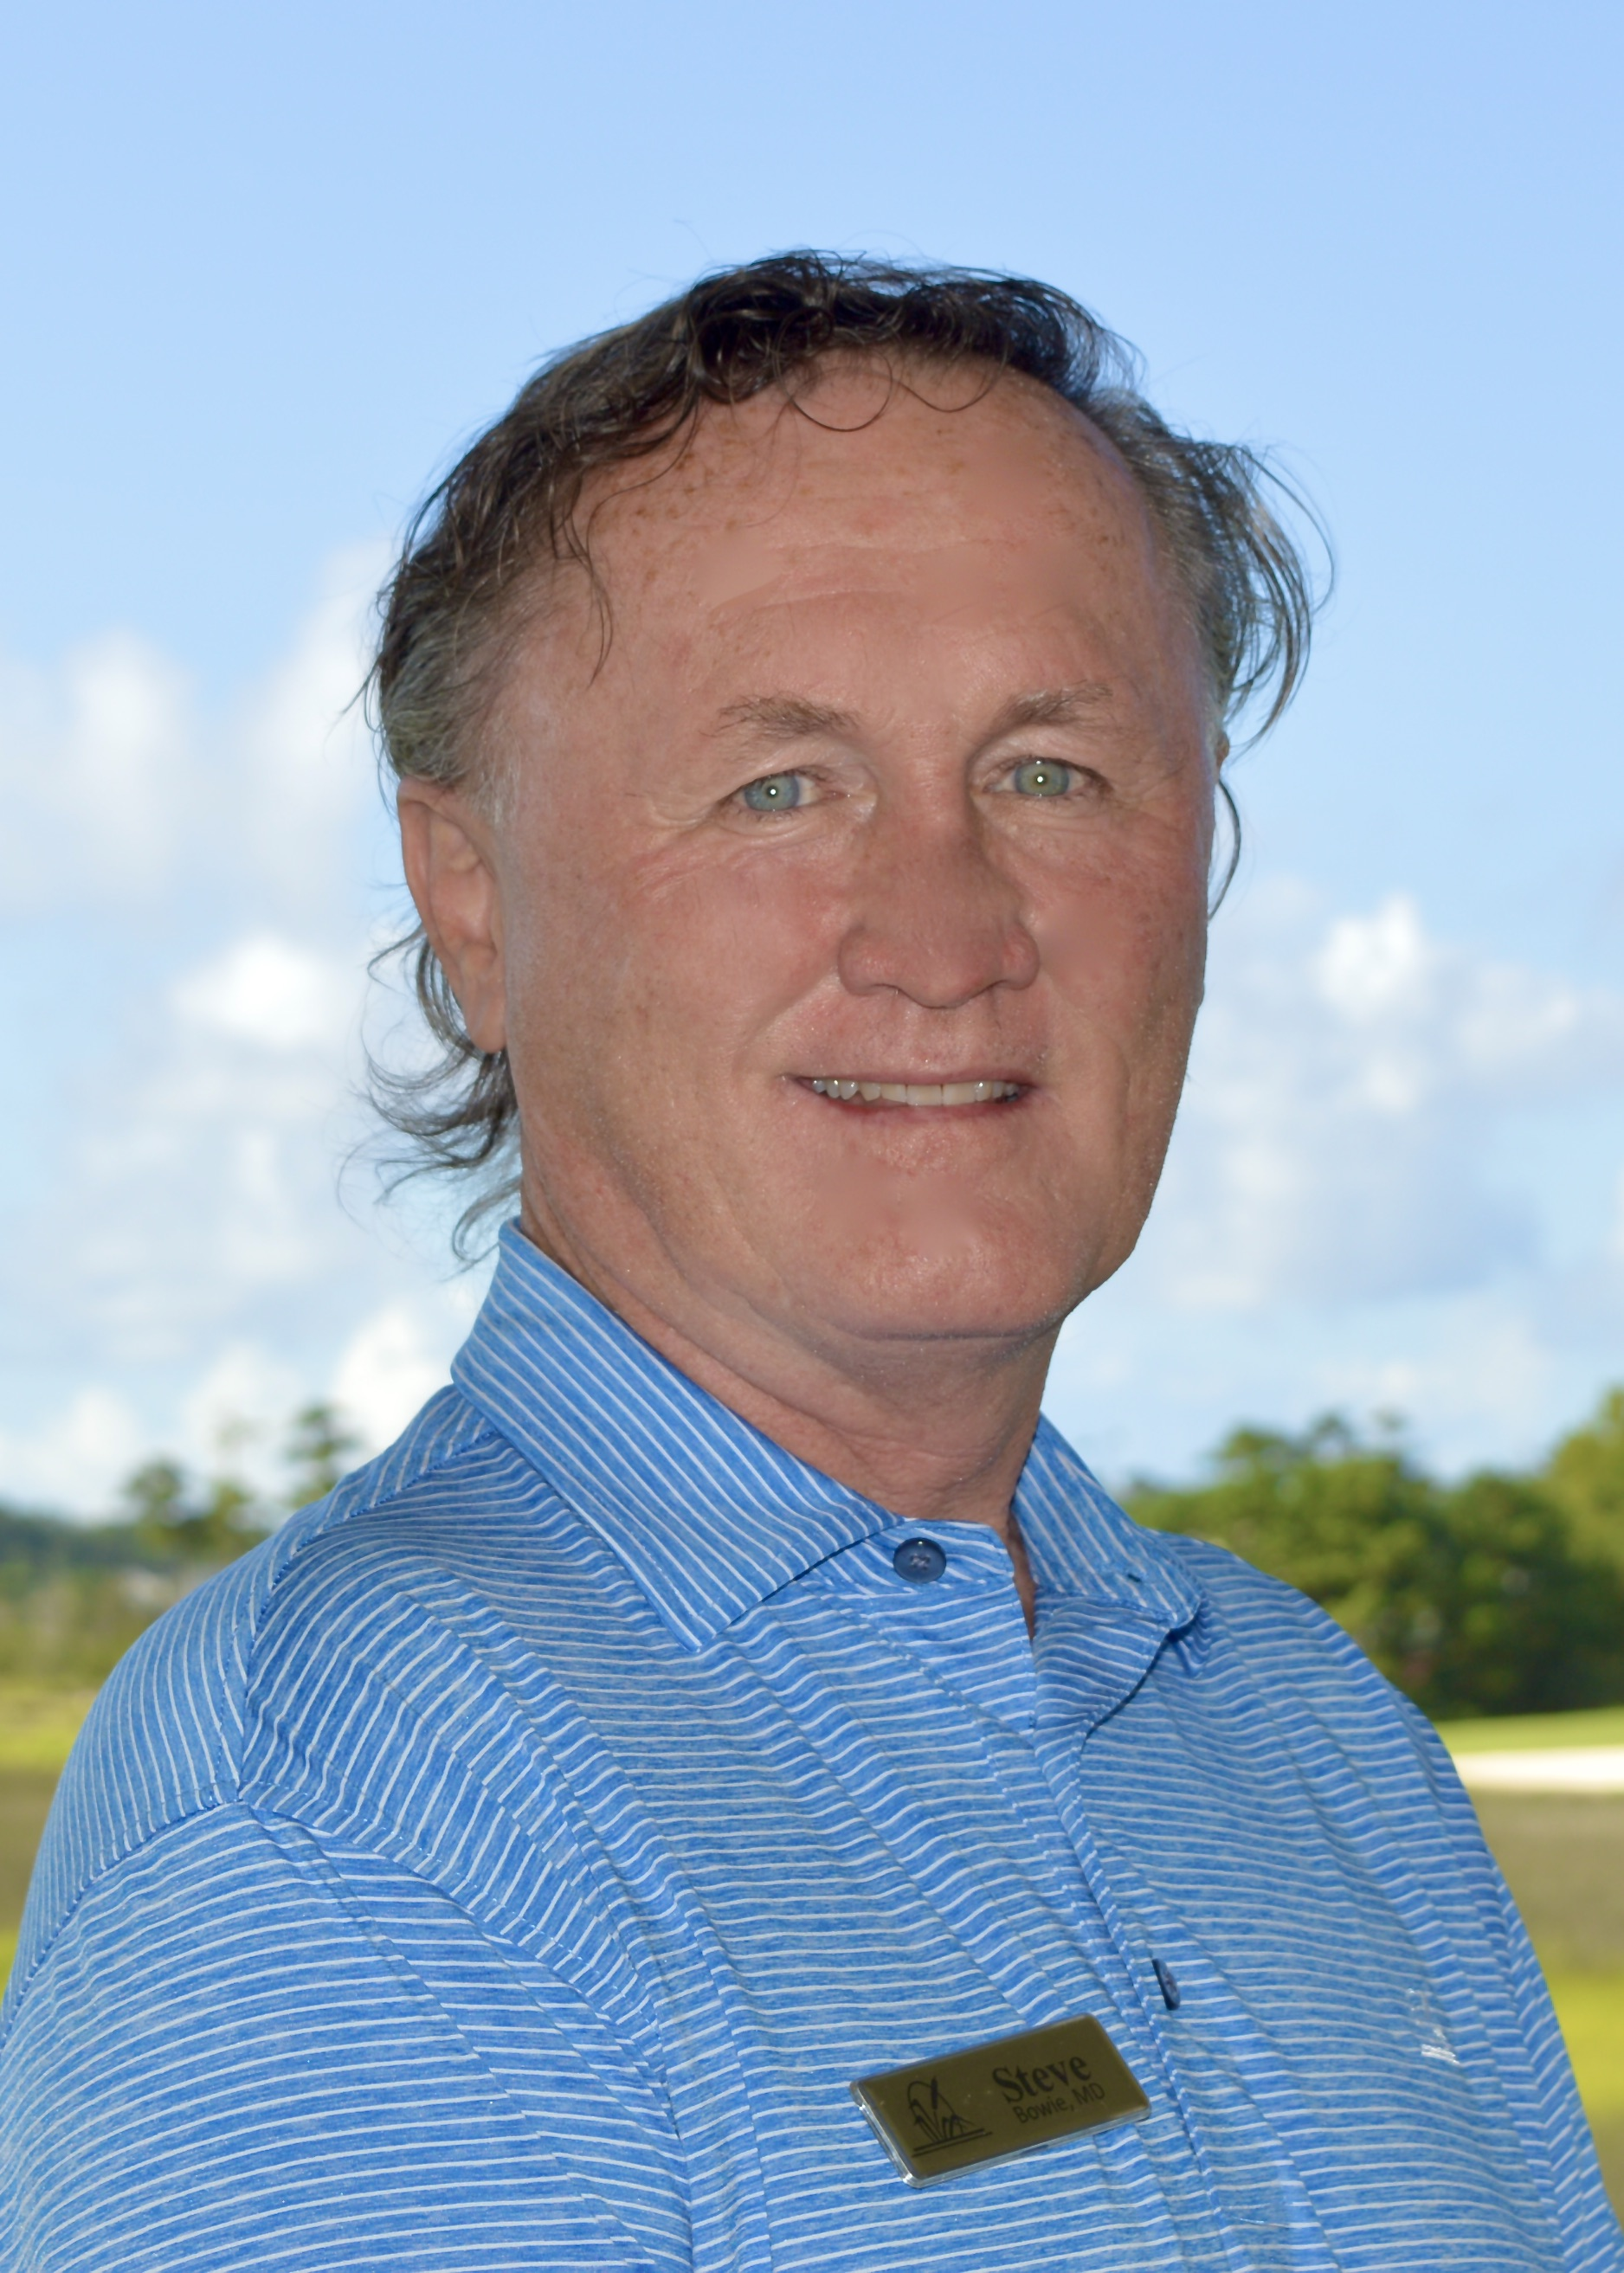 photo of Steve Elkins, PGA